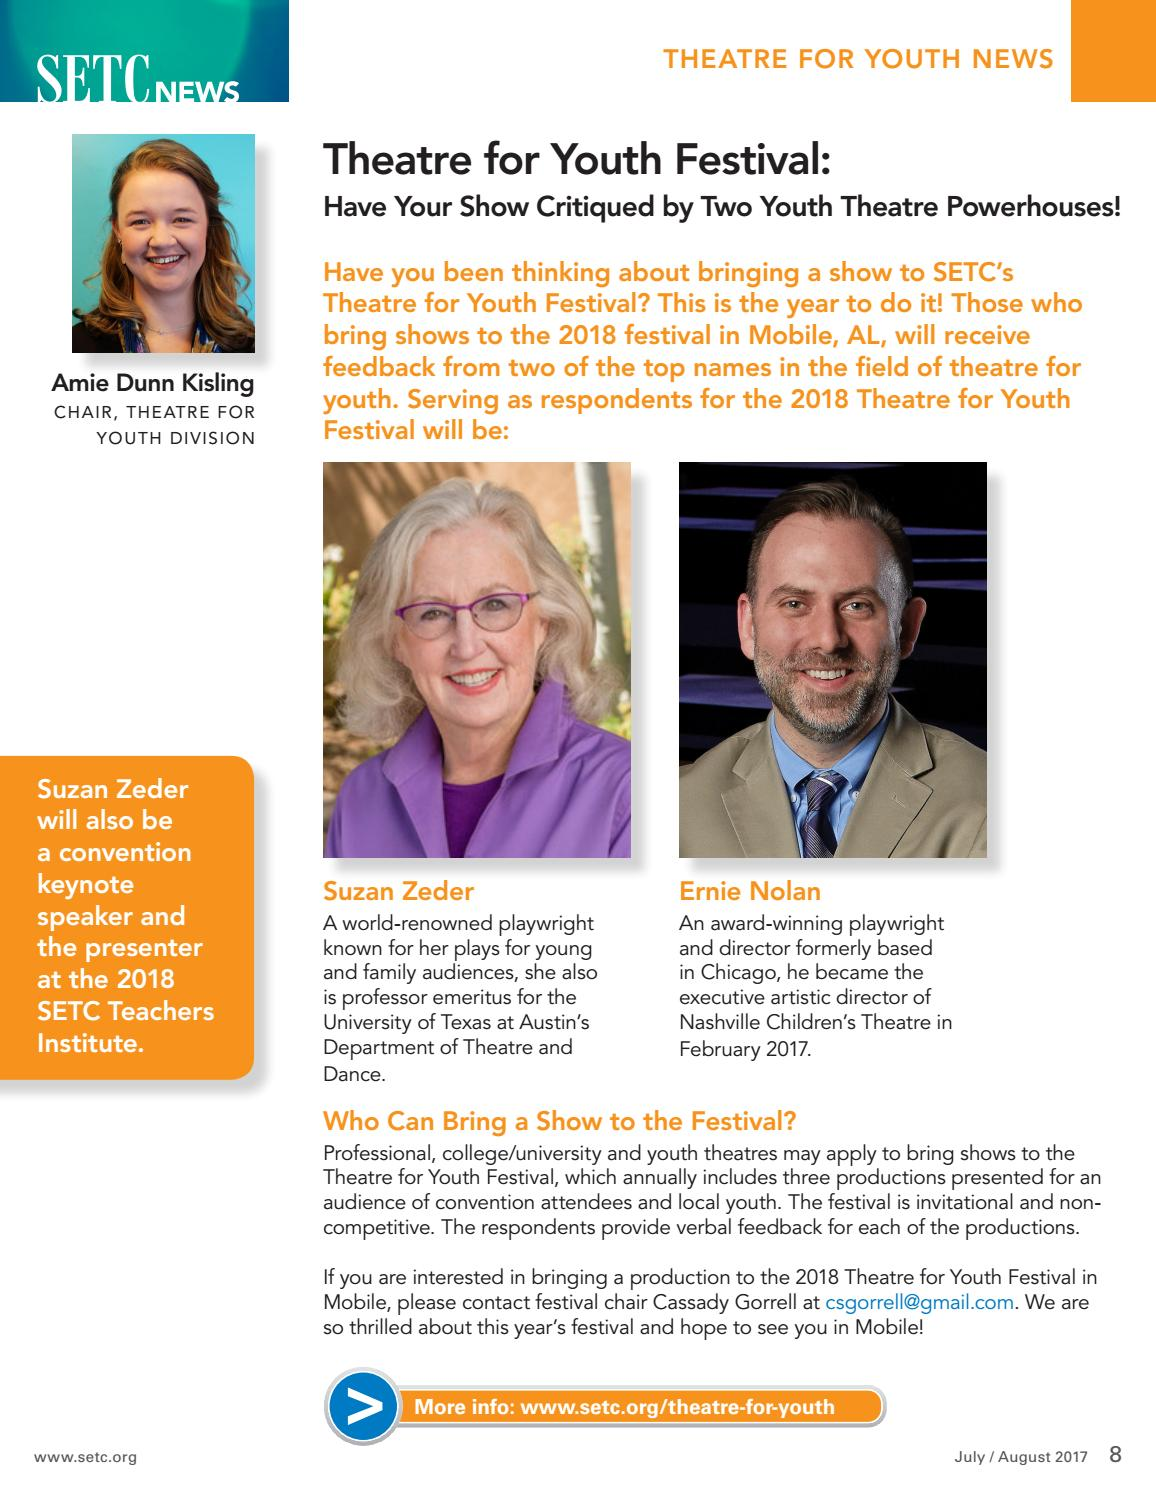 SETC News July/August 2017 by Southeastern Theatre